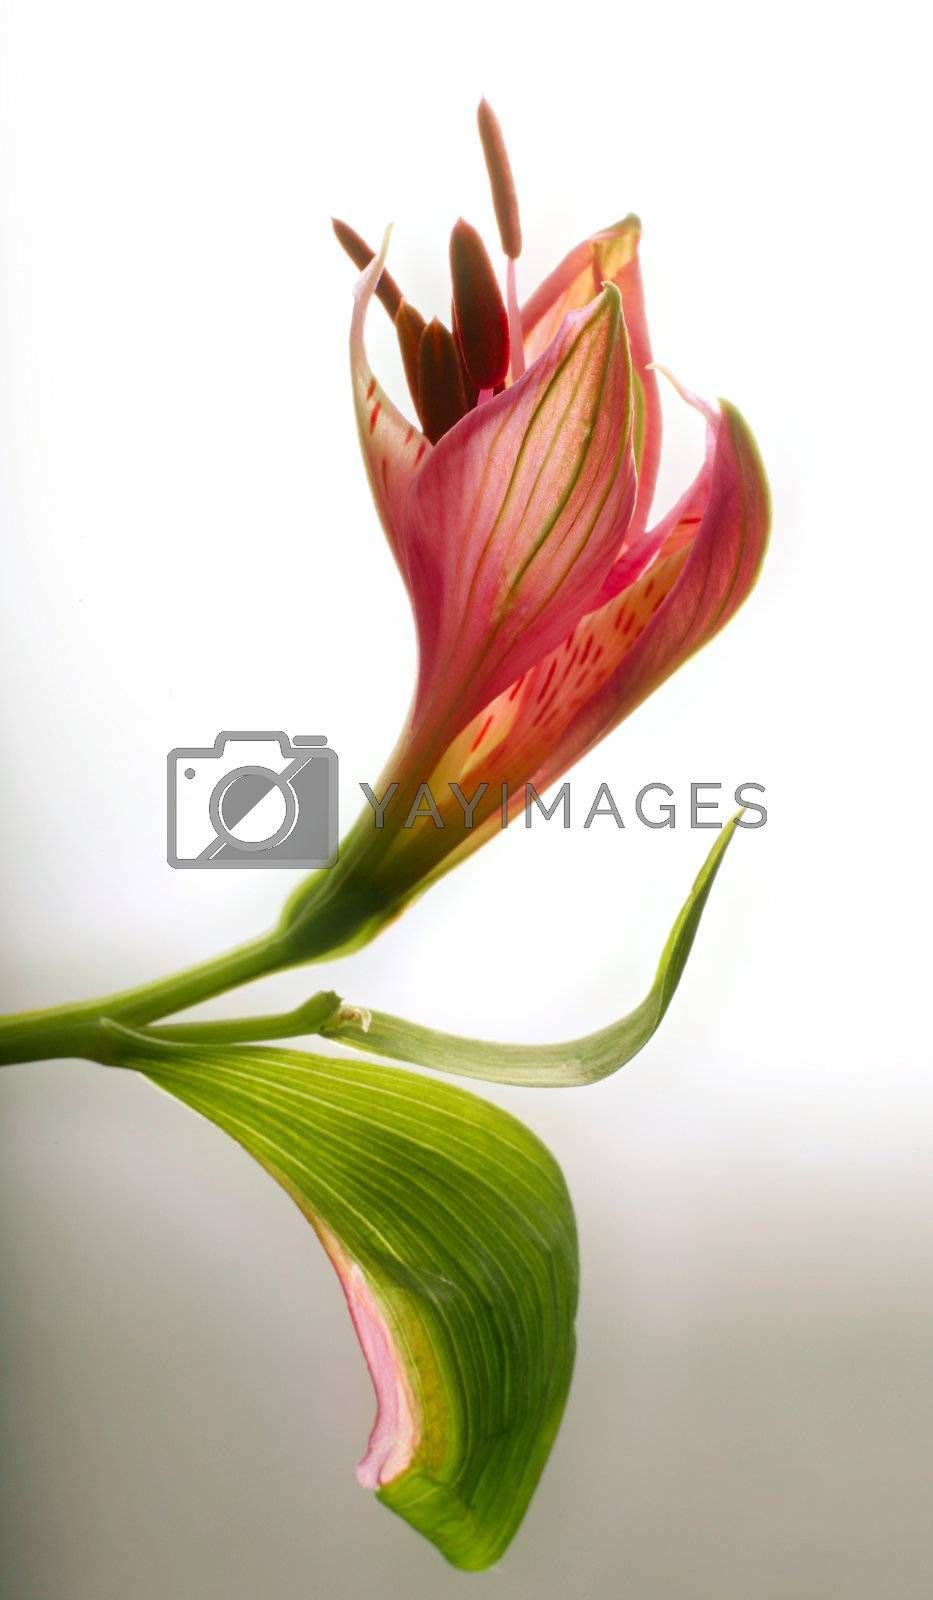 Bud of a flower on a light background